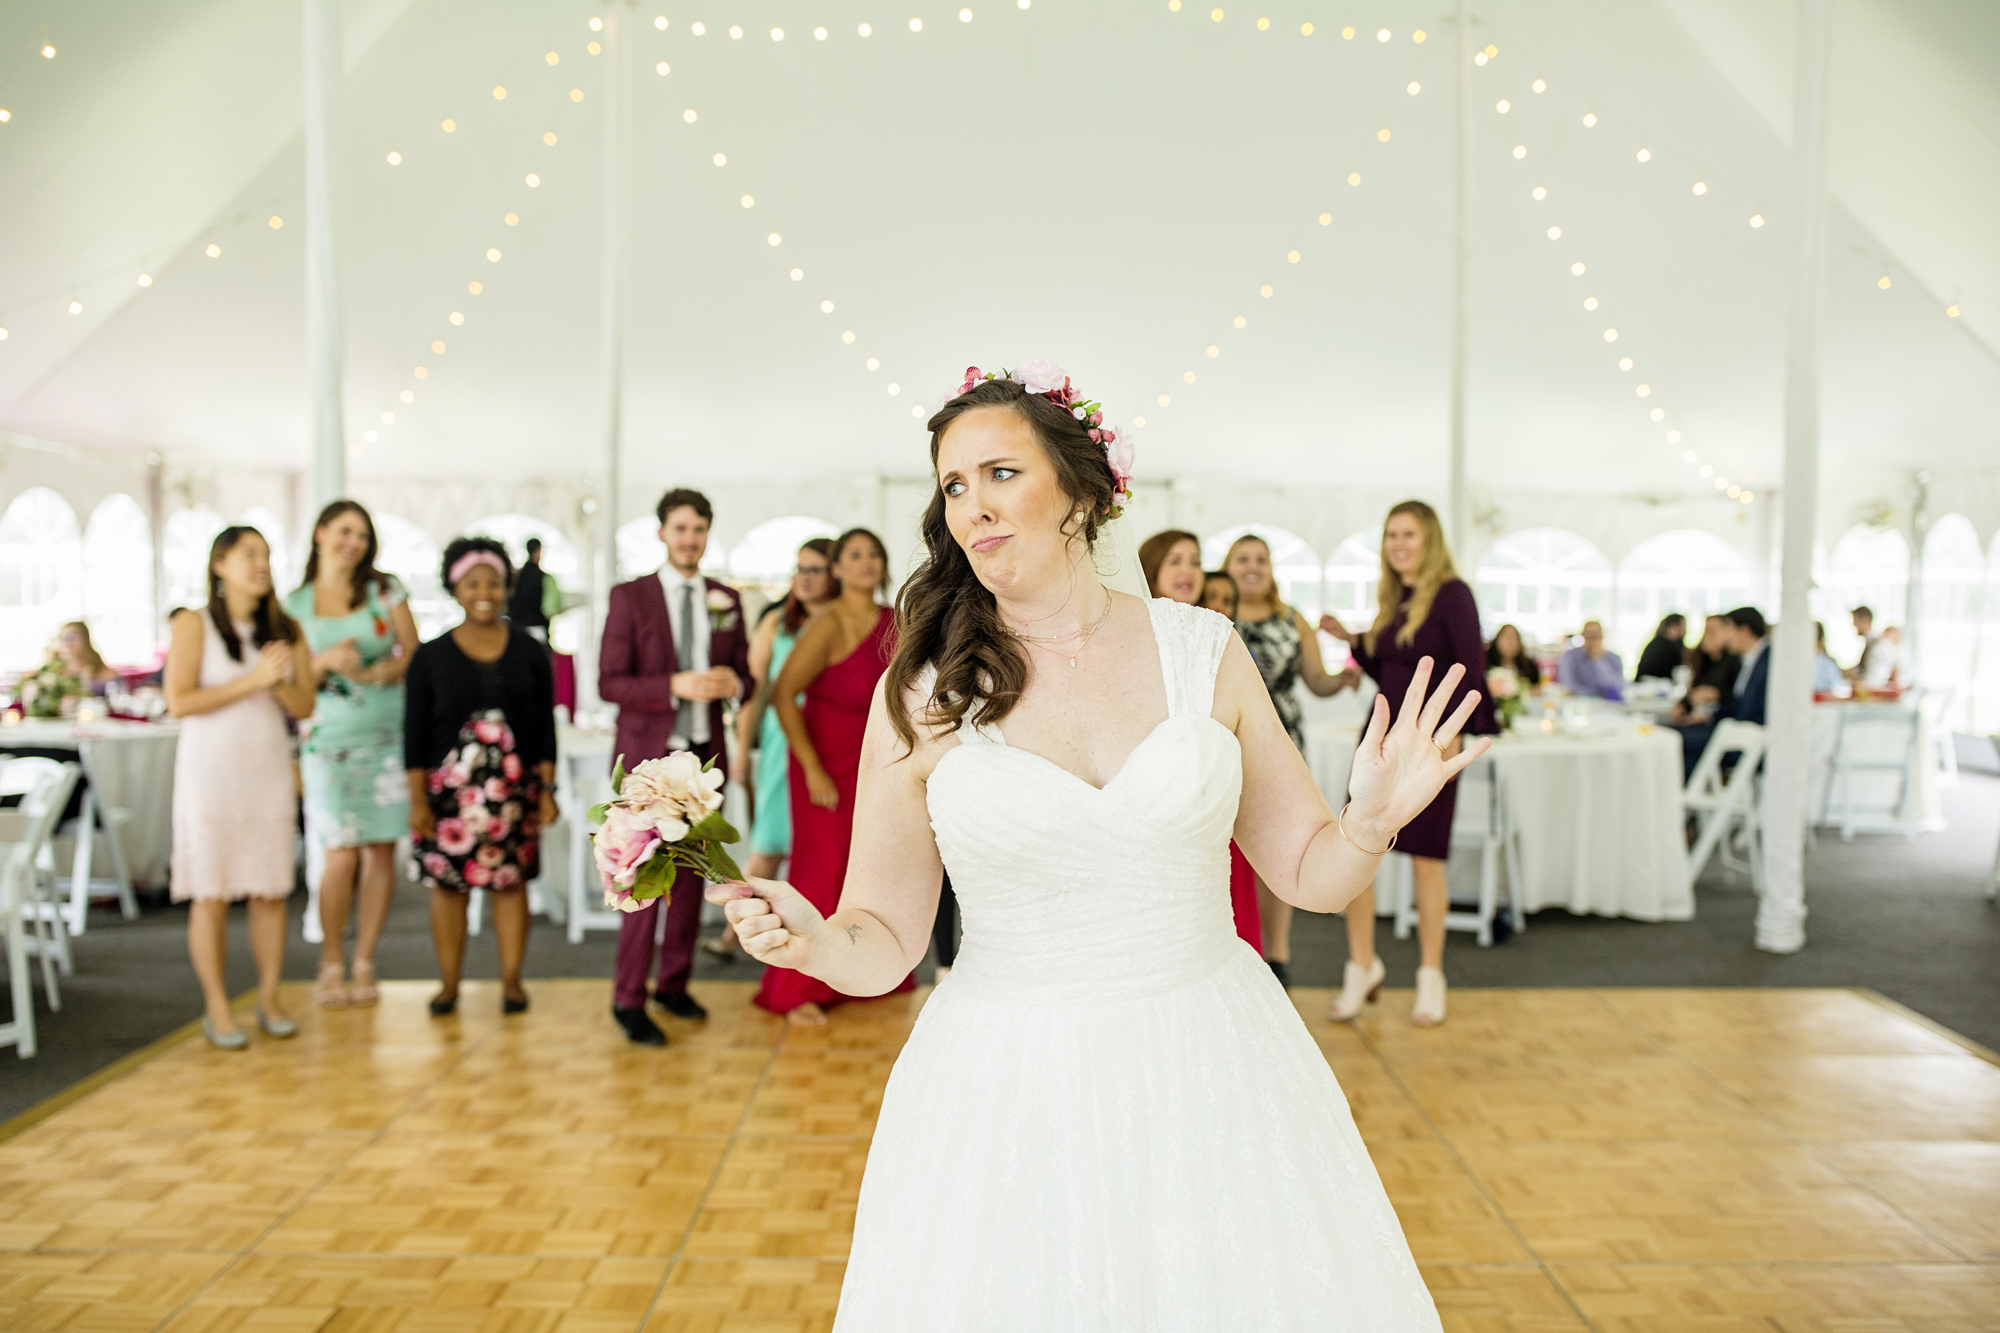 Seriously_Sabrina_Photography_Lisle_Illinois_Morton_Arboretum_Wedding_Day_Gowen133.jpg